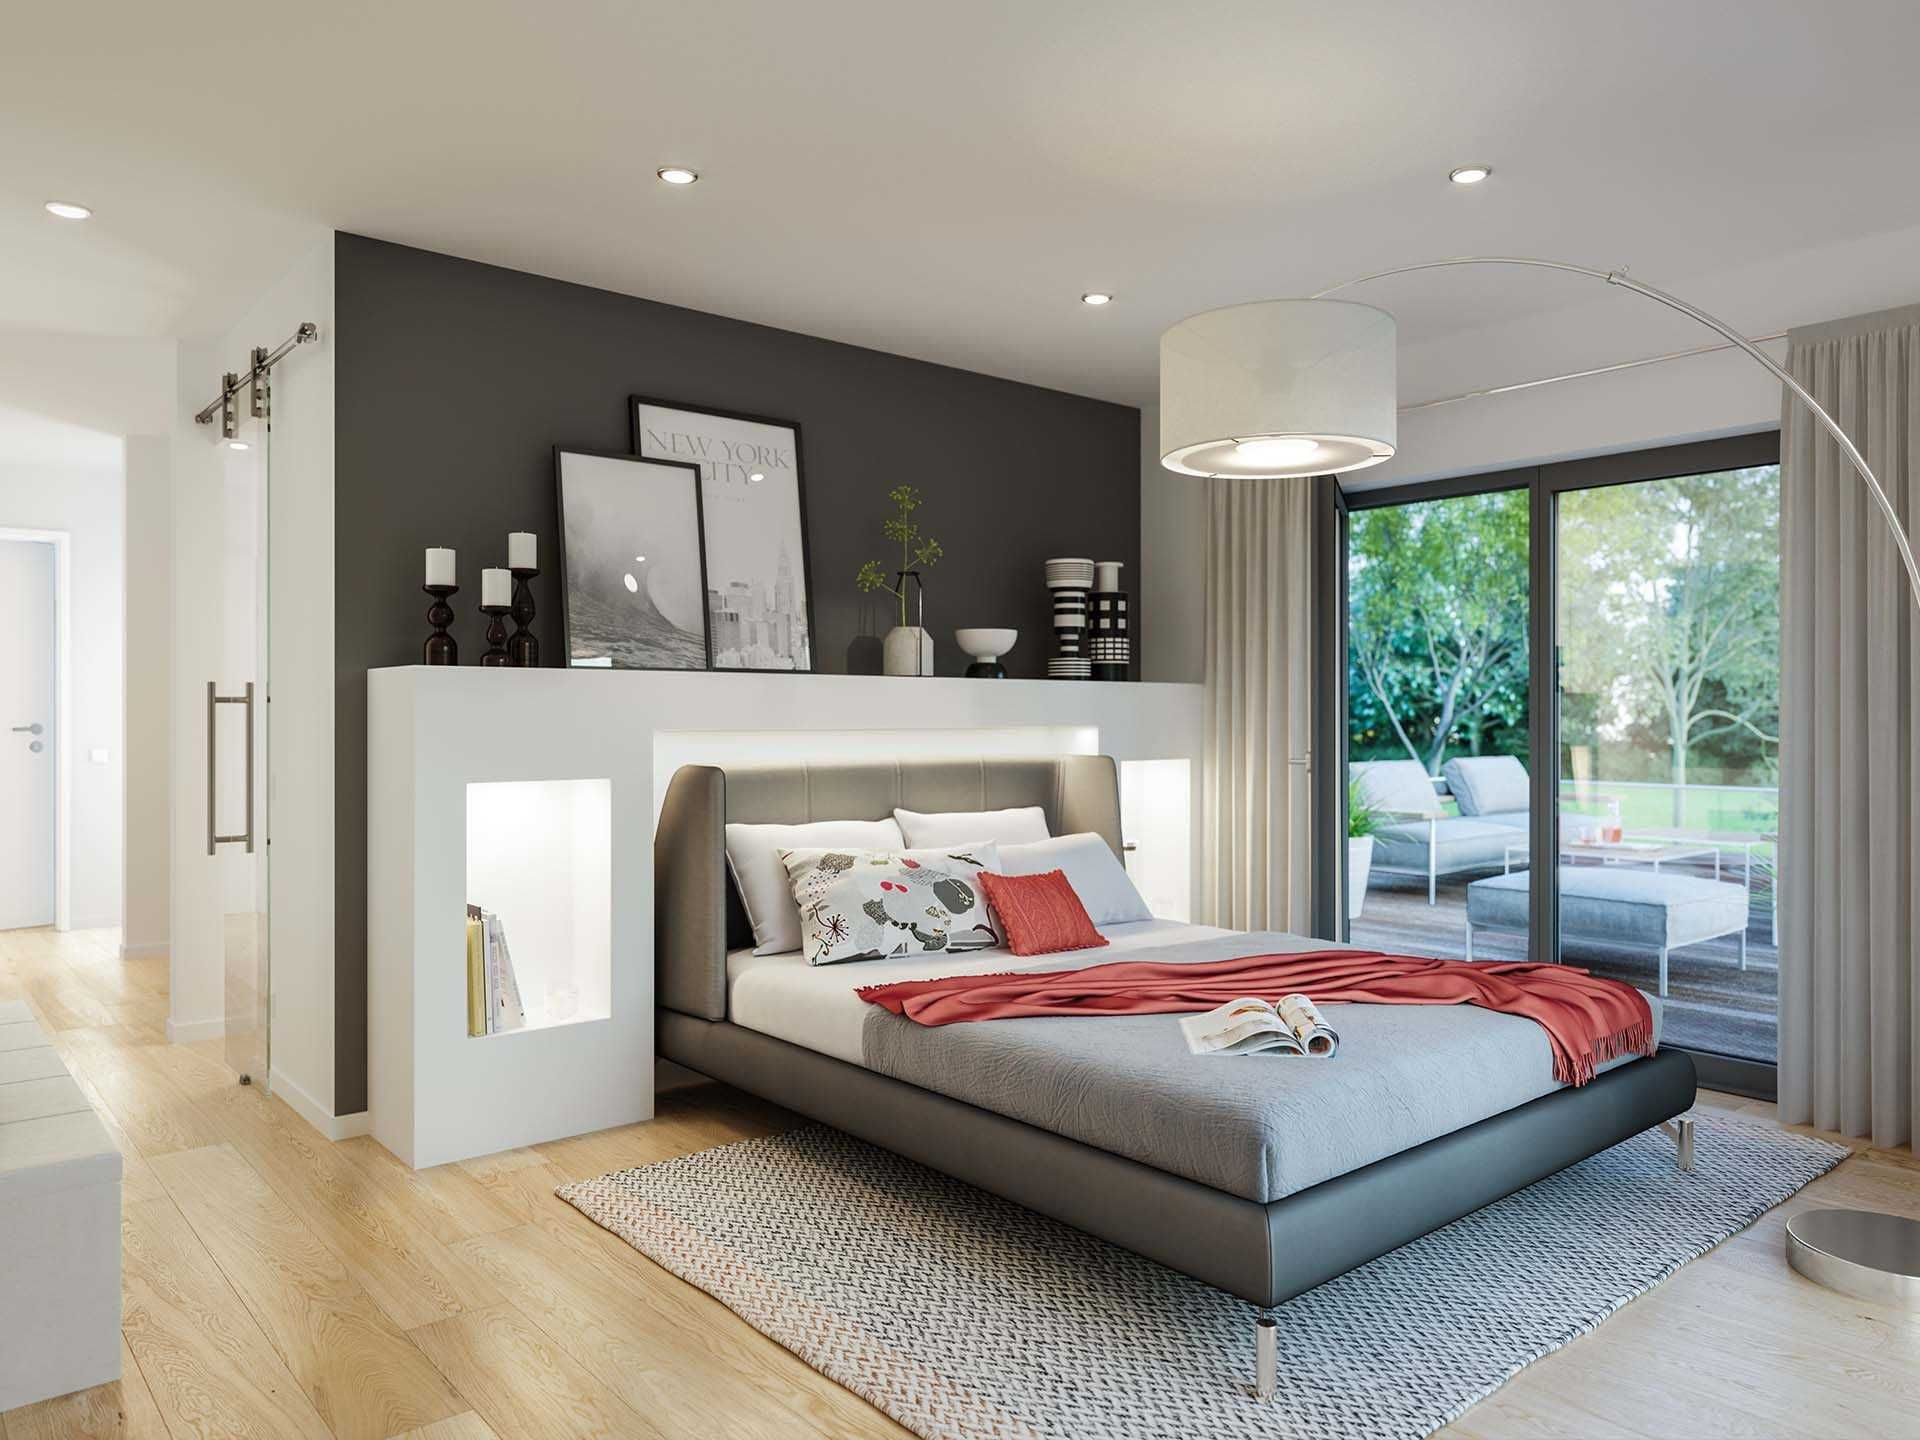 Schlafzimmer Tessin ~ 25 best schlafzimmer images on pinterest bedroom bedrooms and